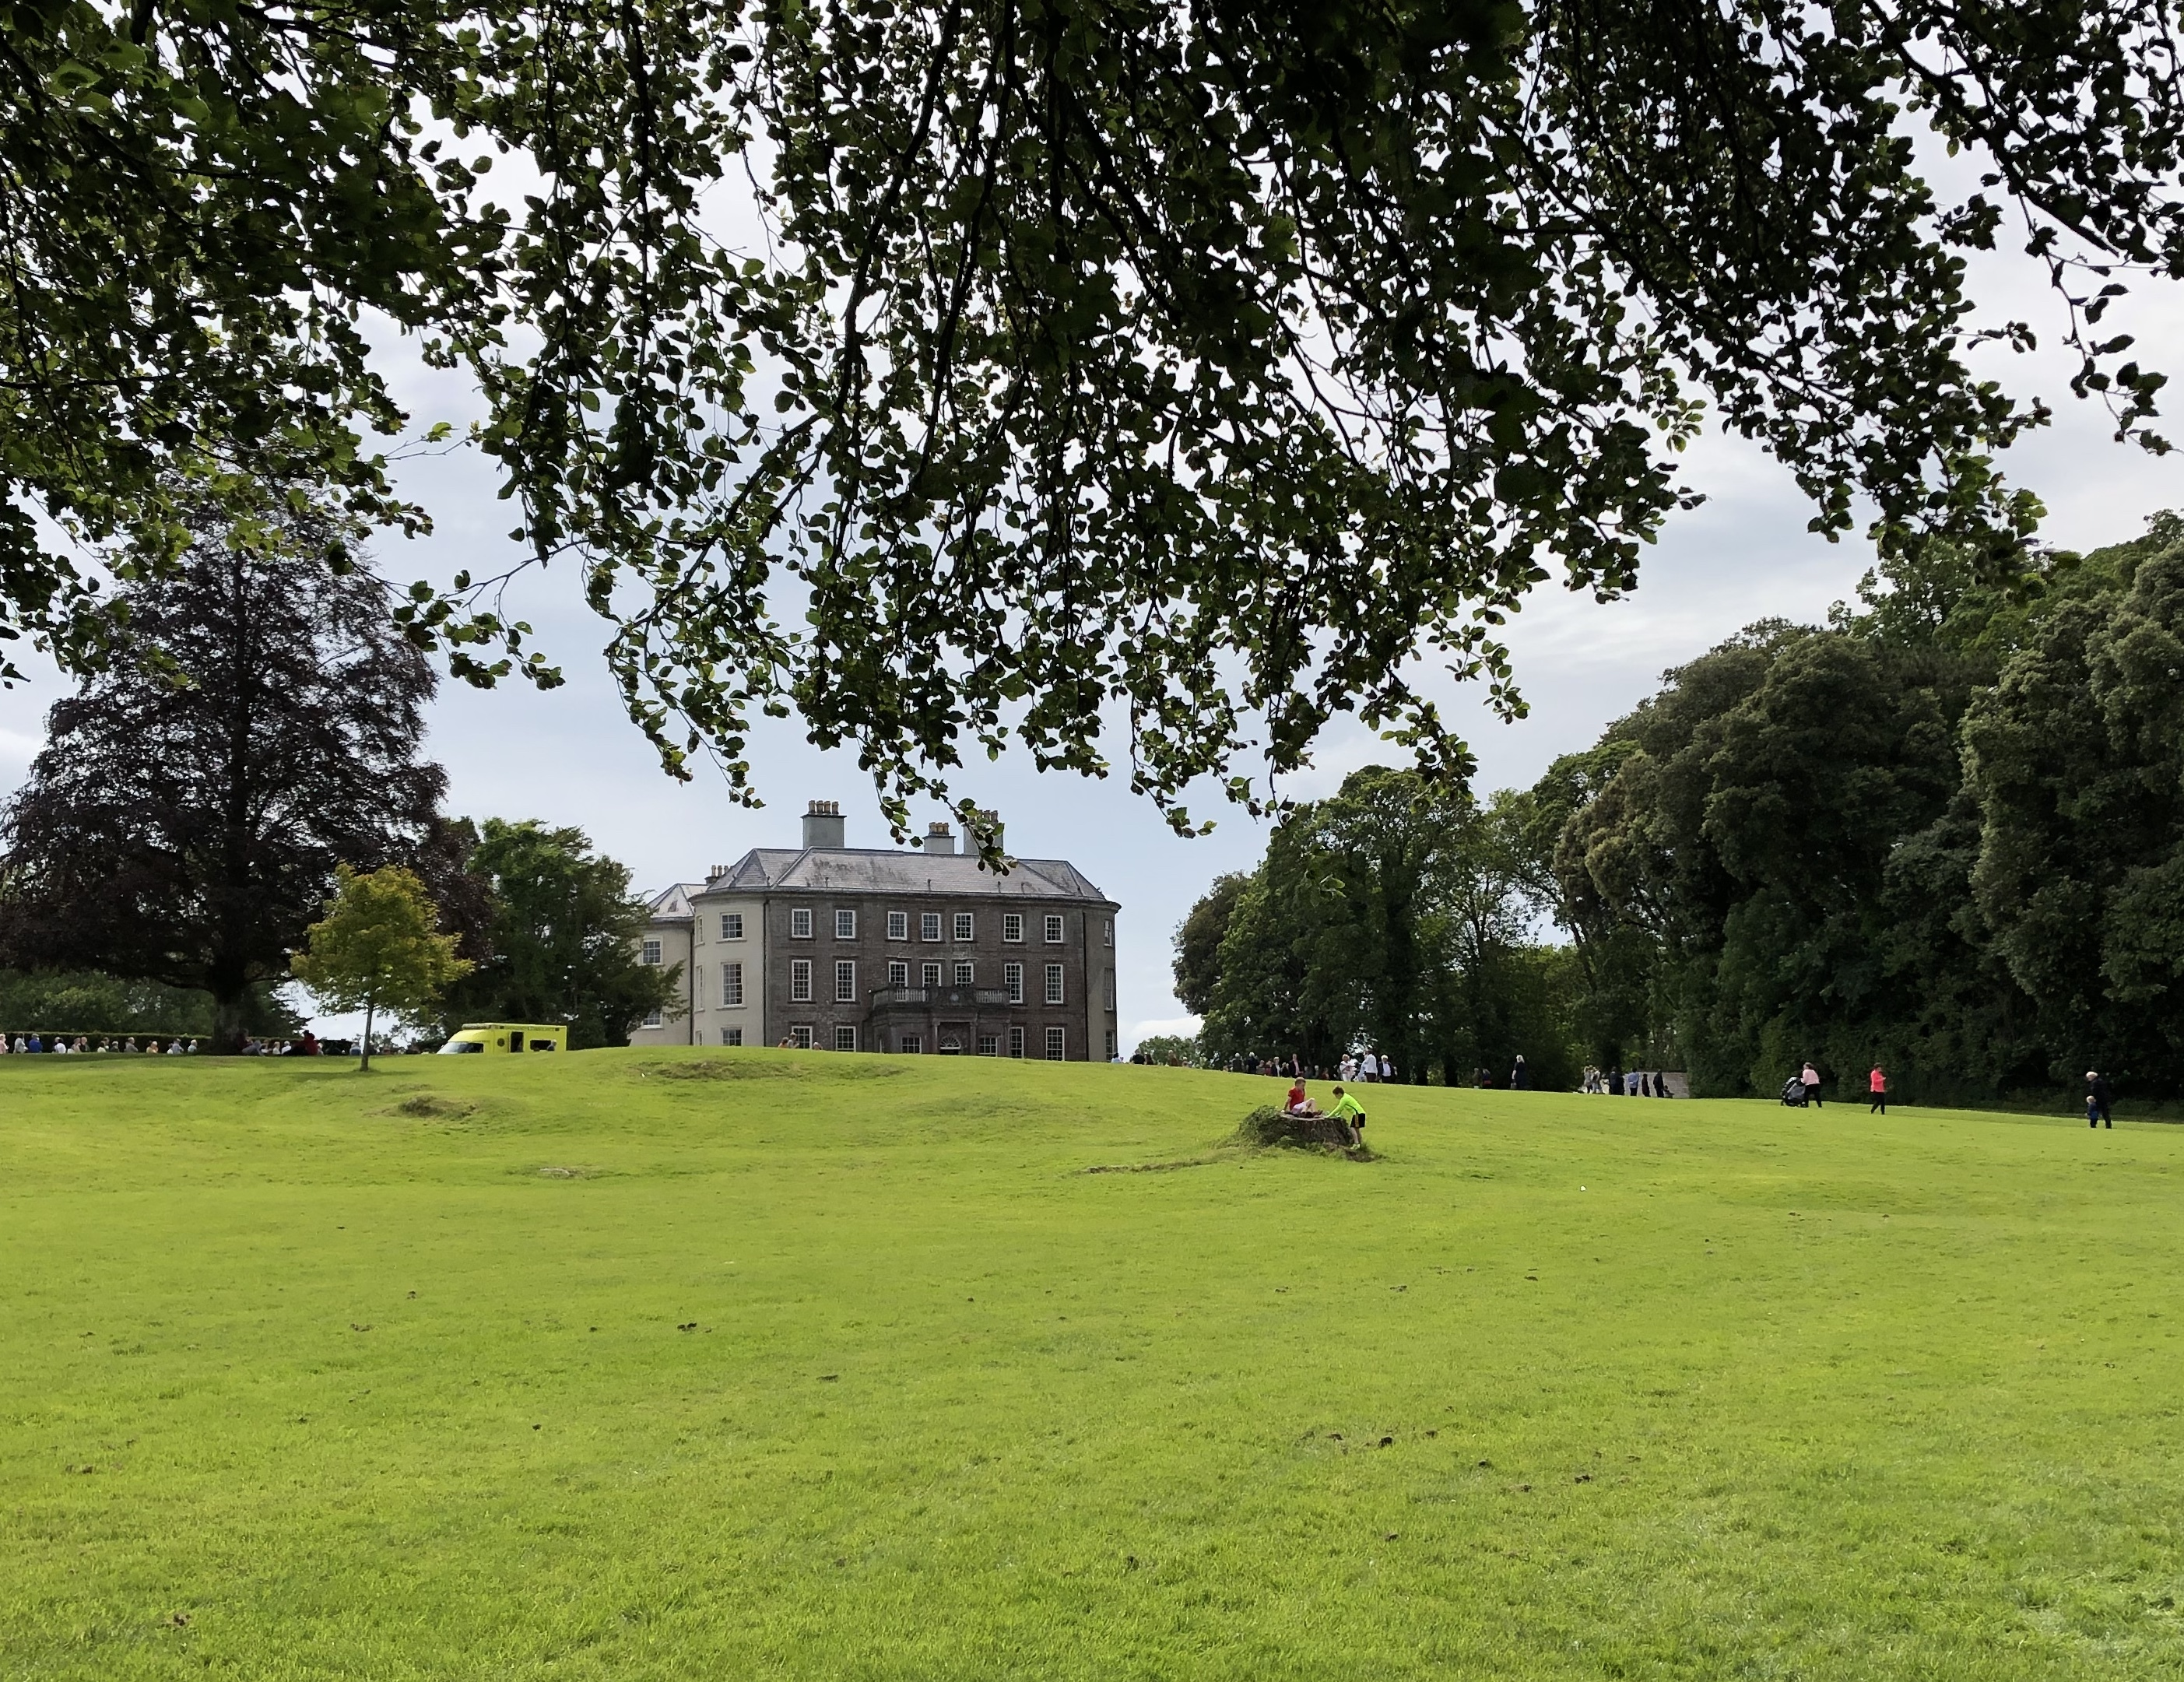 Doneraile-reopening-2019-3.jpg#asset:12313